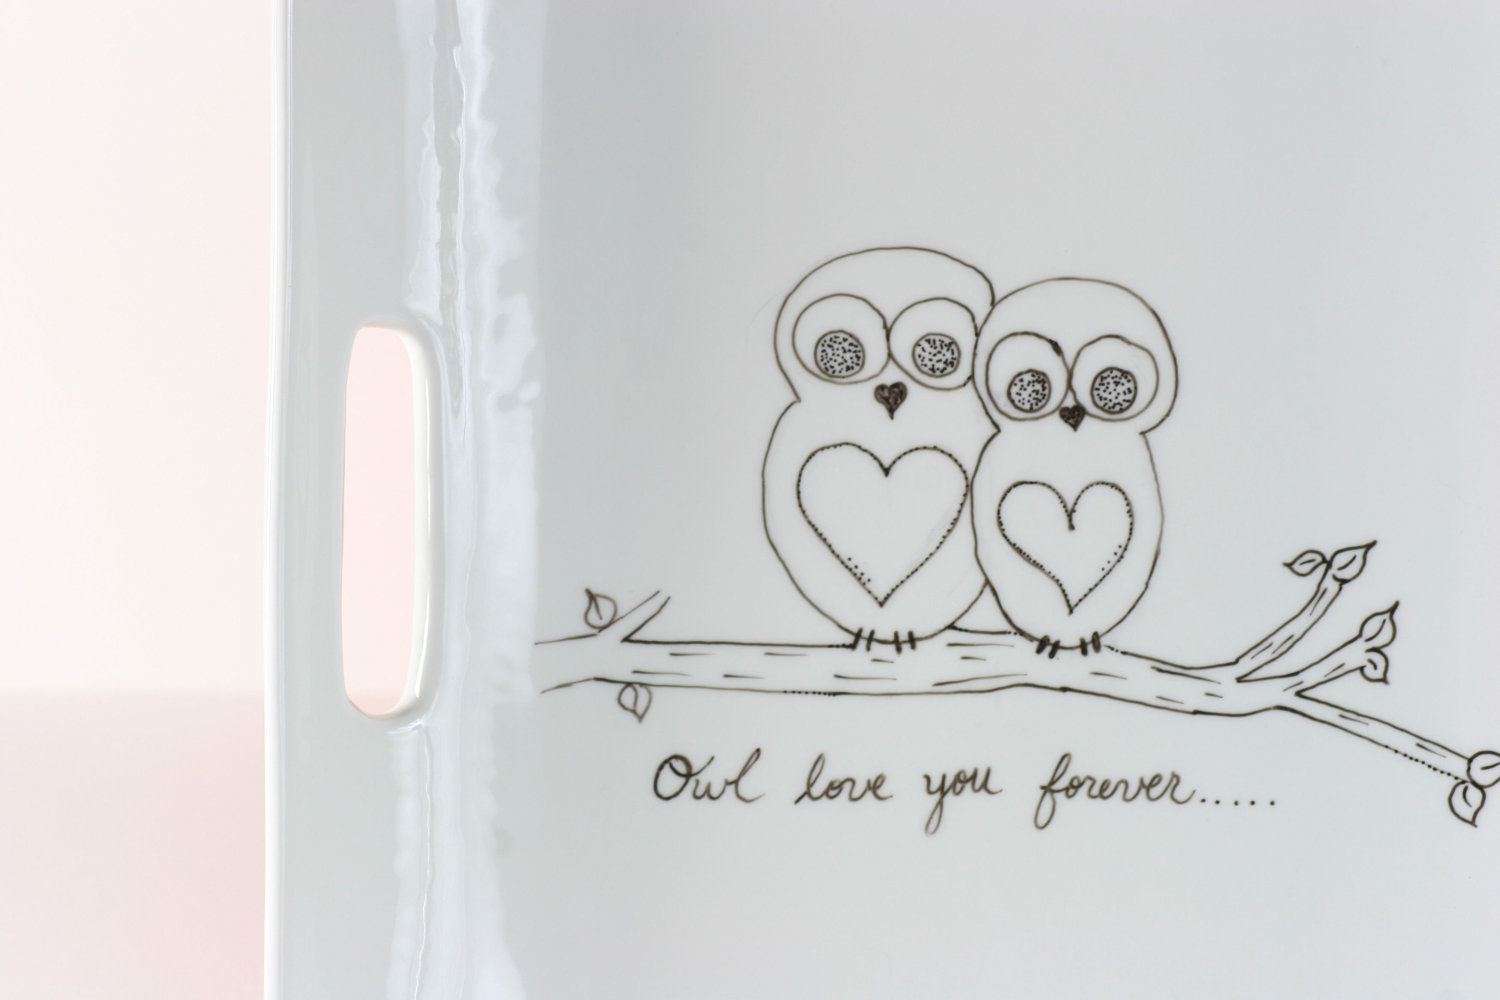 Owls-for-the-wedding-2012-reception-trends-handmade-owl-registry-item.original